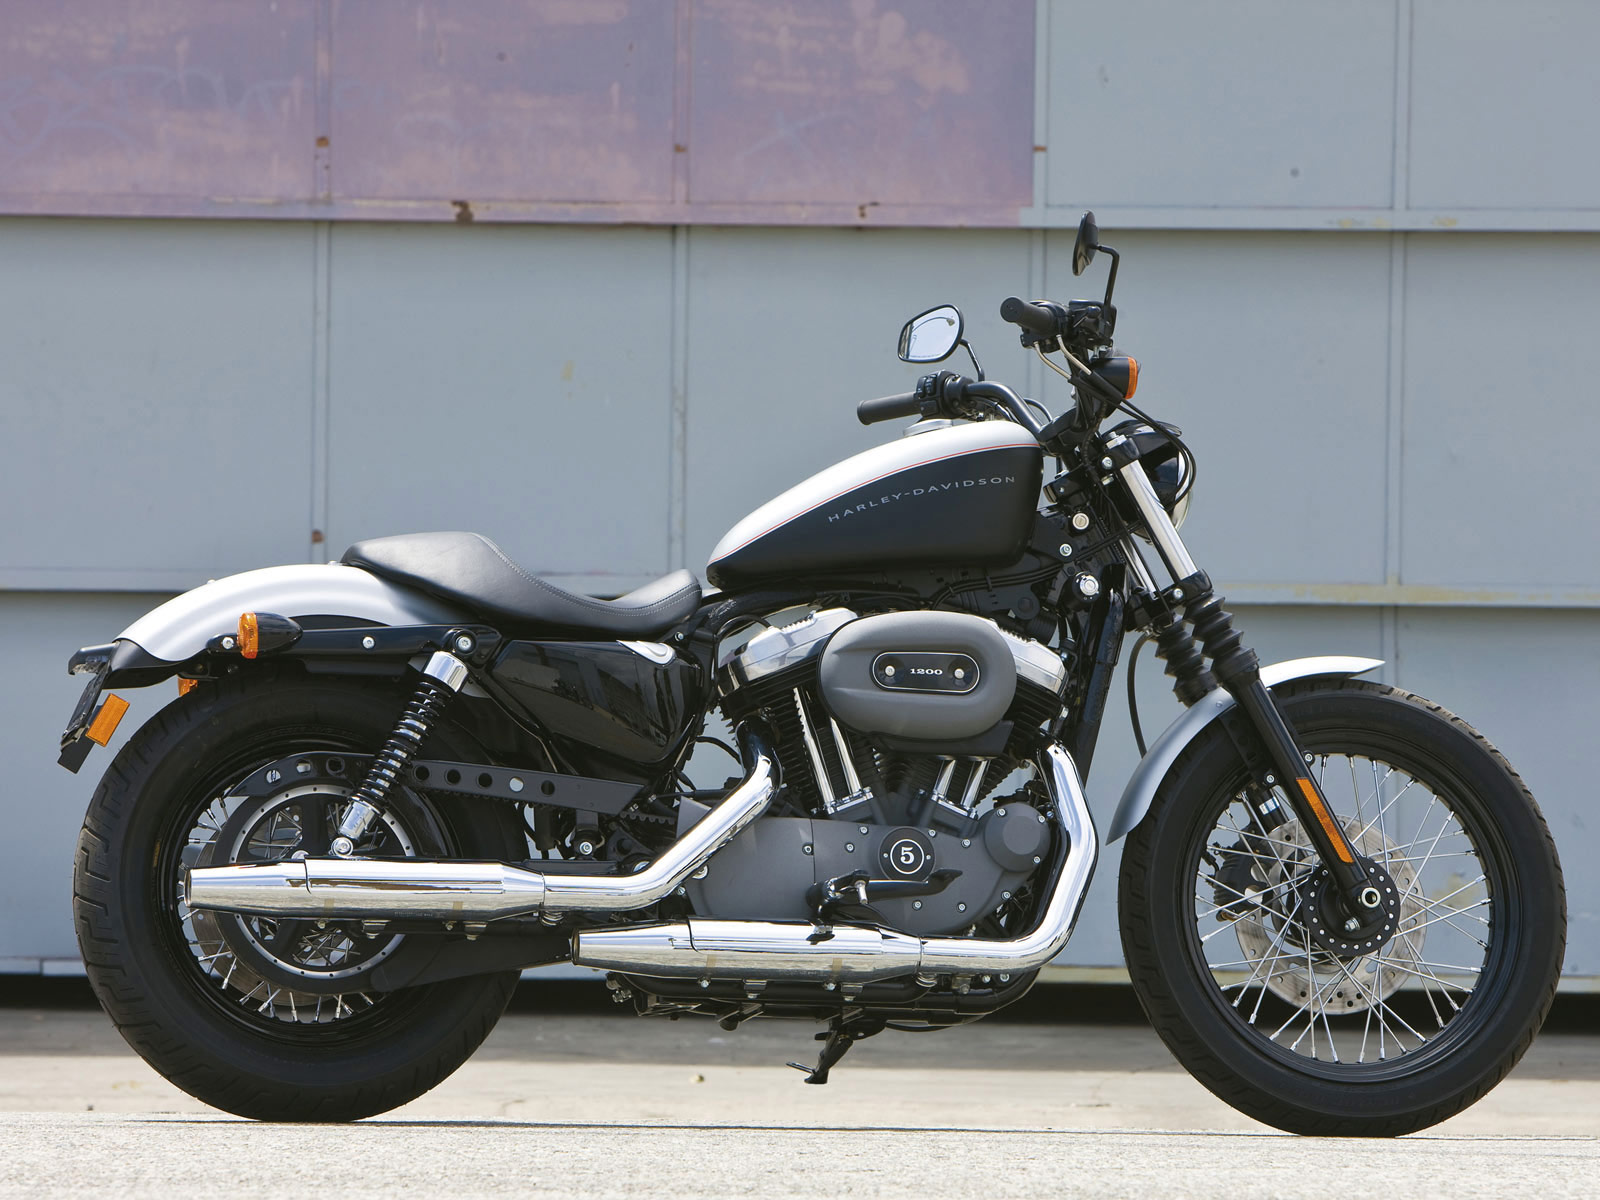 xl 1200n sportster 1200 nightster 2009 harley davidson. Black Bedroom Furniture Sets. Home Design Ideas